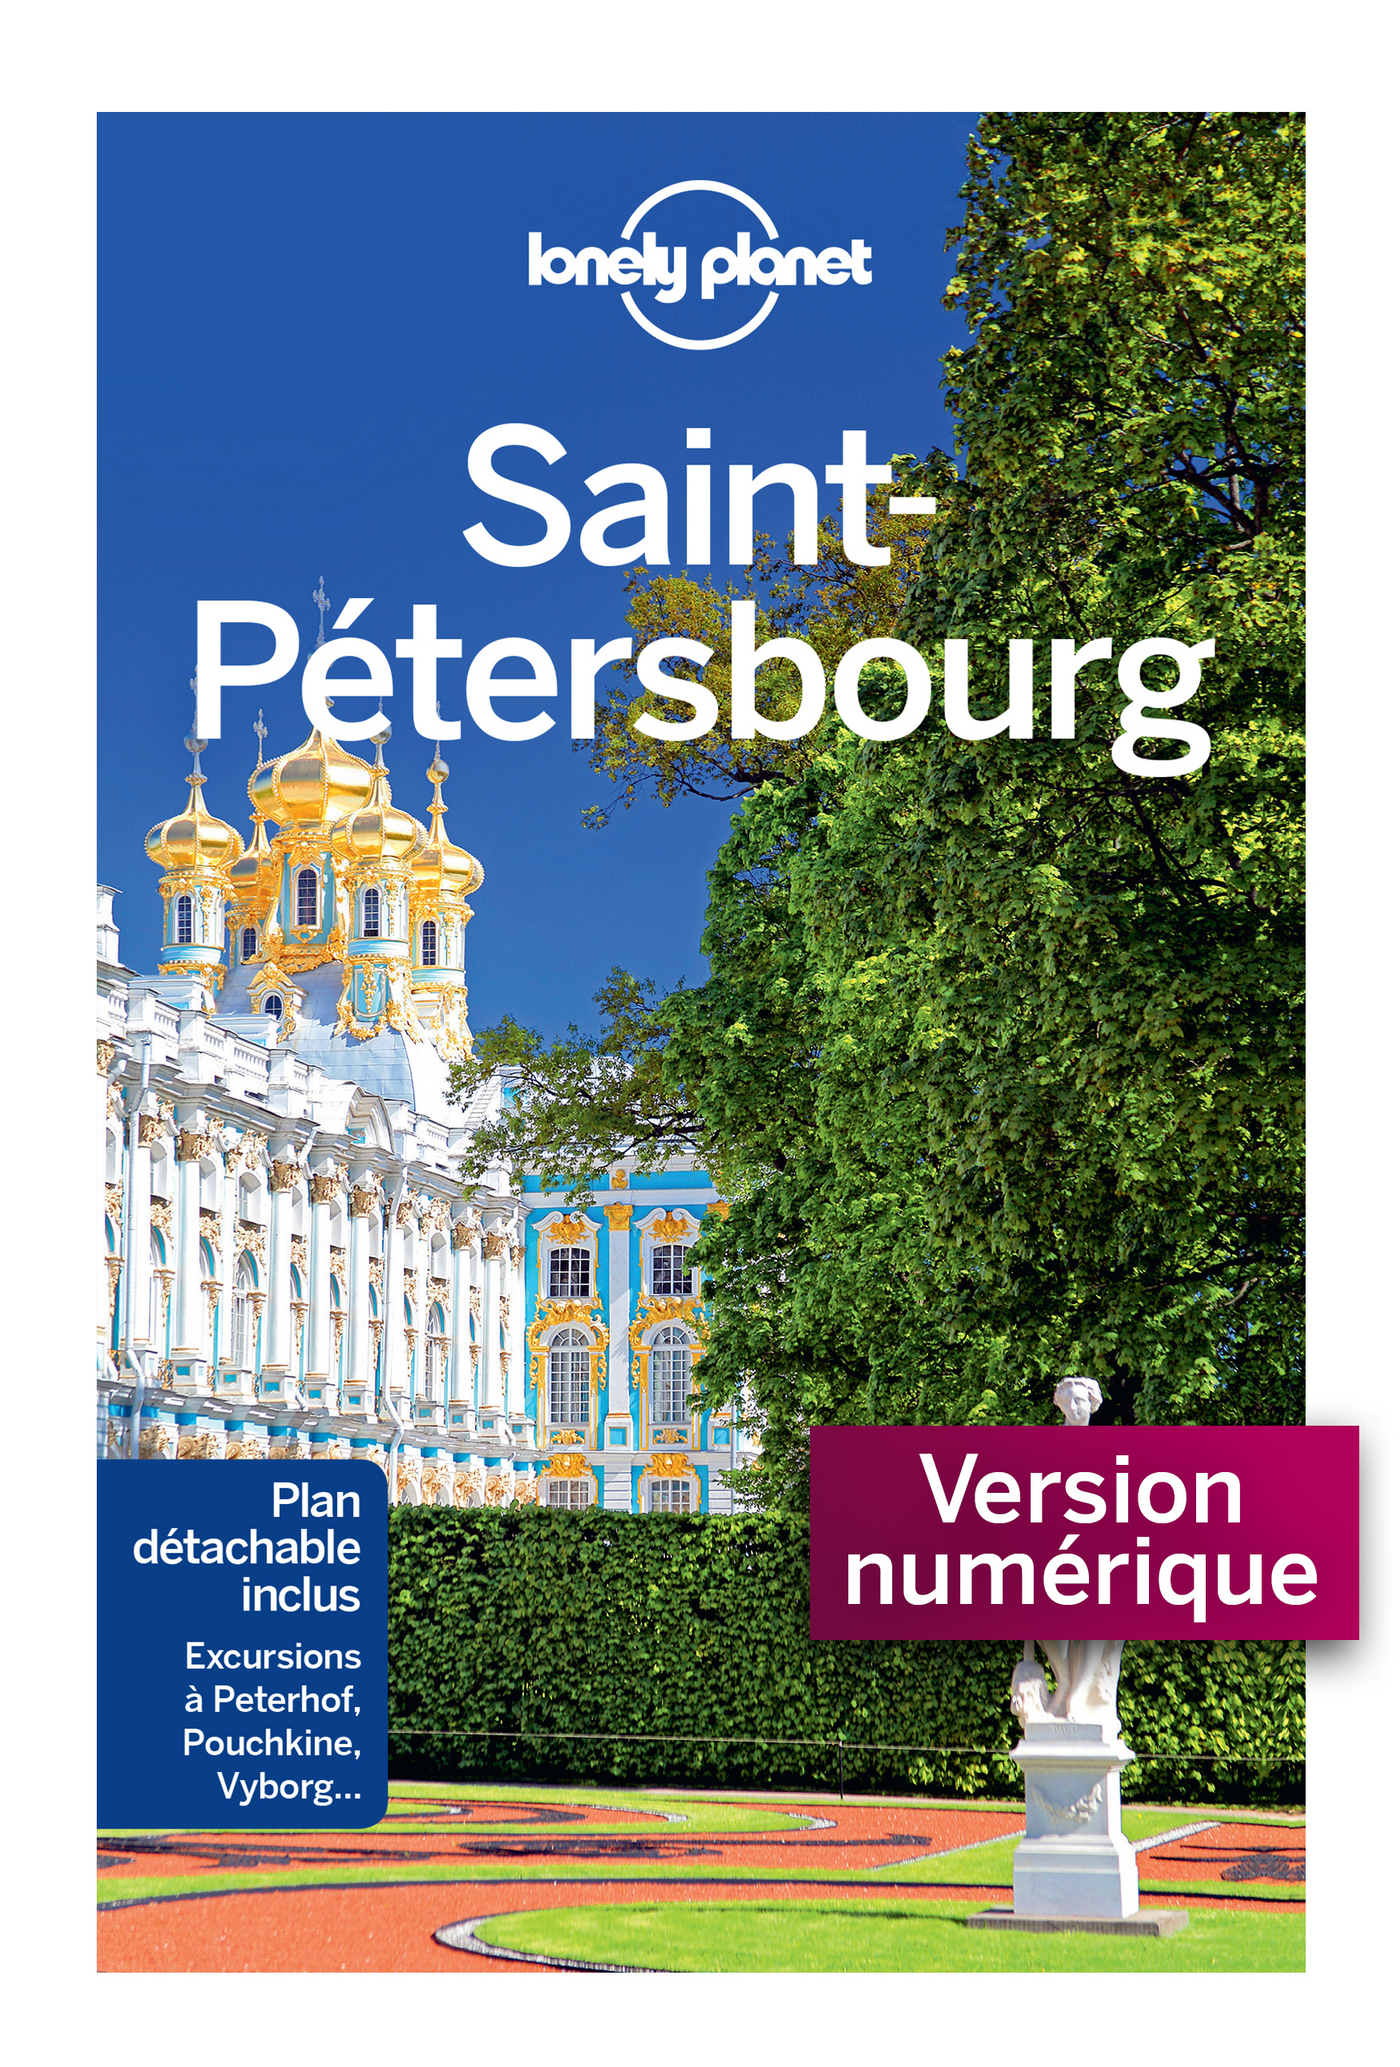 Saint Petersbourg Cityguide 3